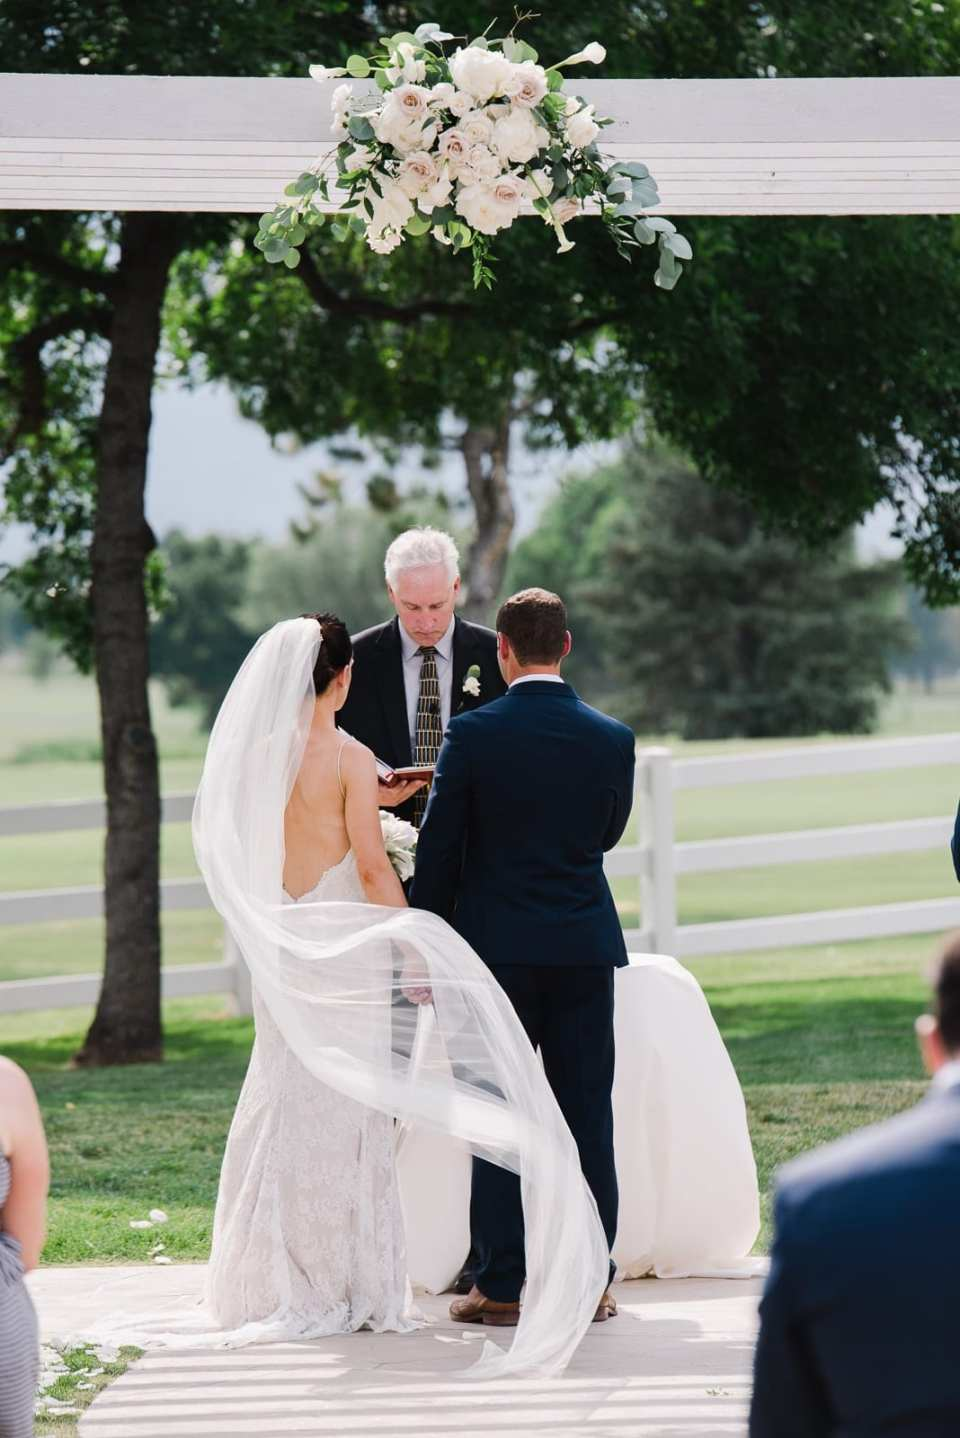 Classic wedding ceremony at the Barn at Raccoon Creek | Josie V Photography